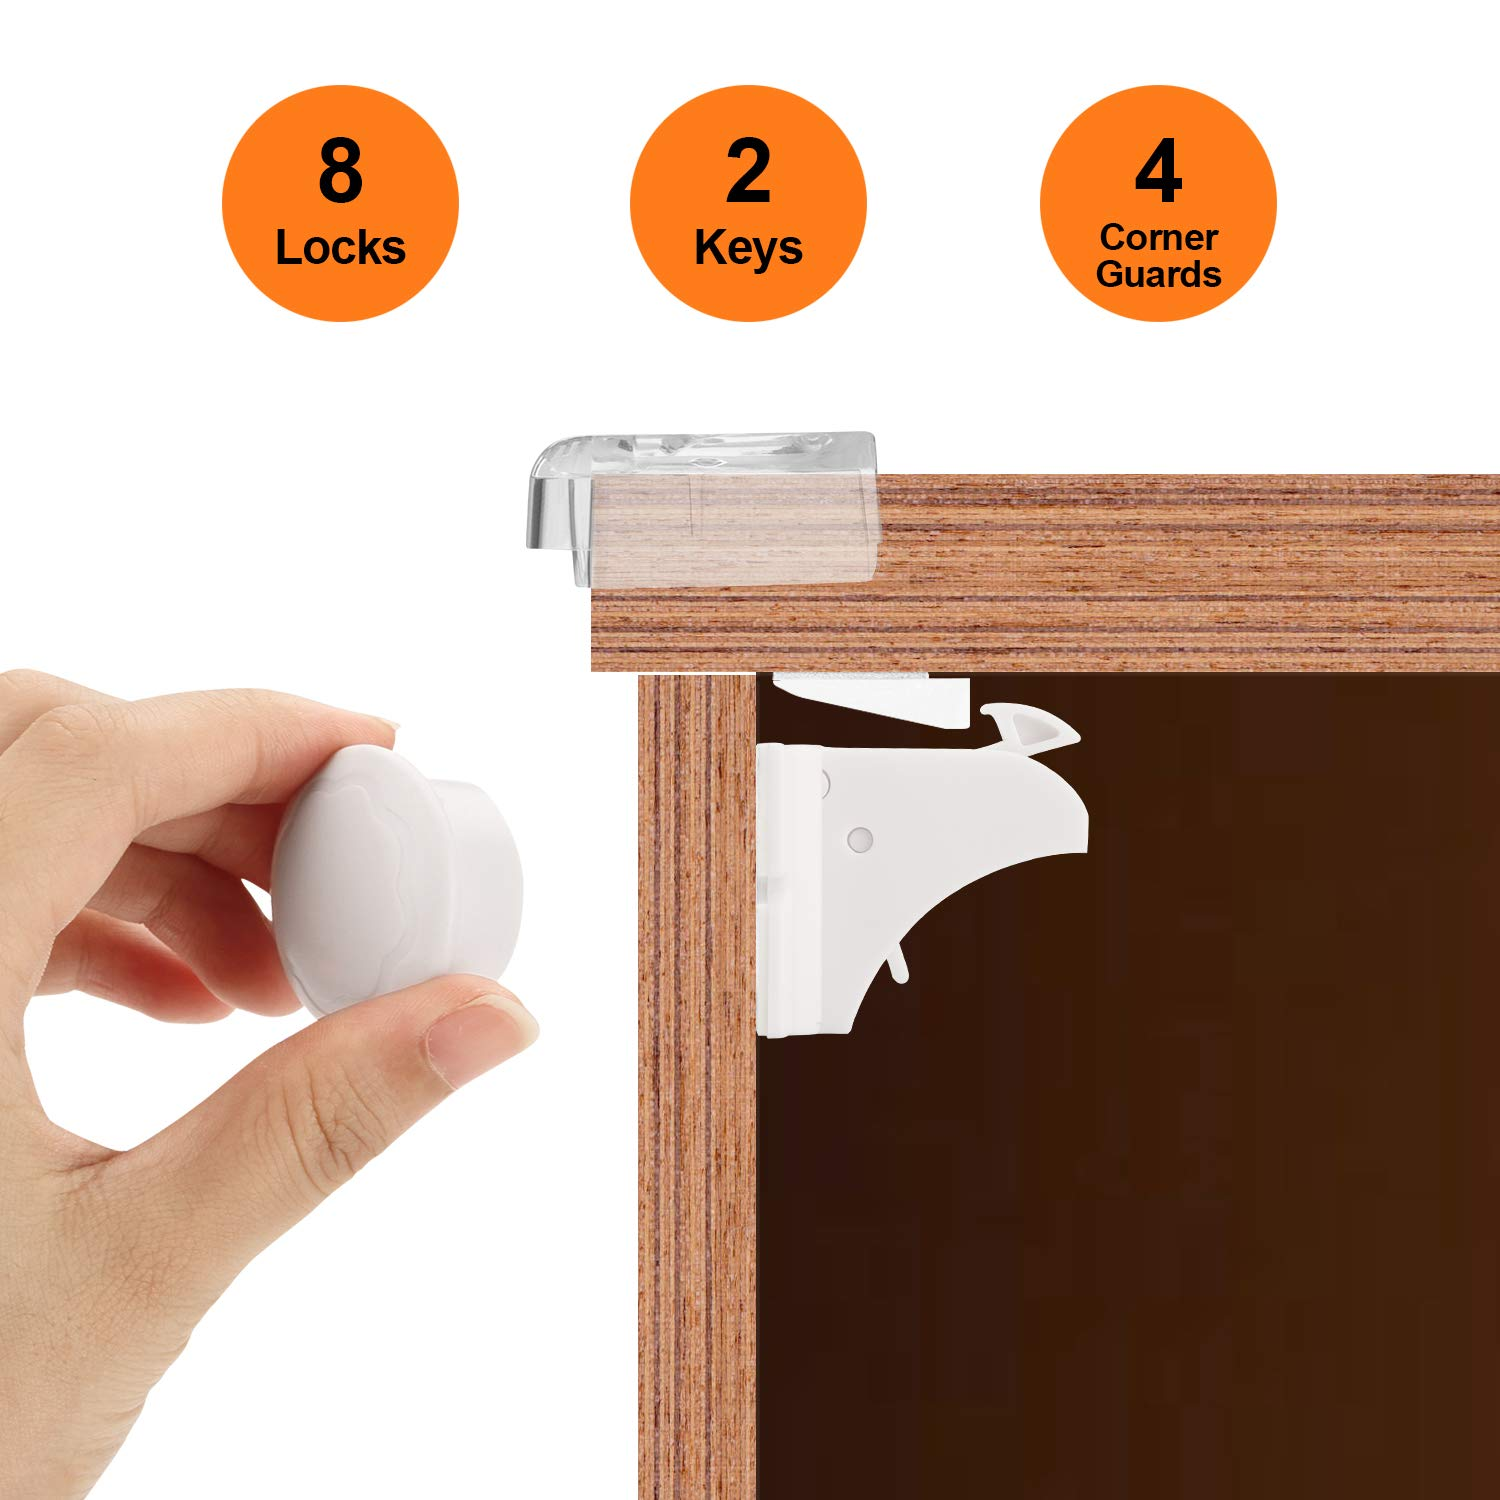 Baby Proofing Magnetic Cabinet Locks Child Safety, Fixm Kids Proof Cupboard Locks Latches with 3M Adhesive for Cabinet & Drawers (8 Locks + 2 Keys + 4 Corner Guards)